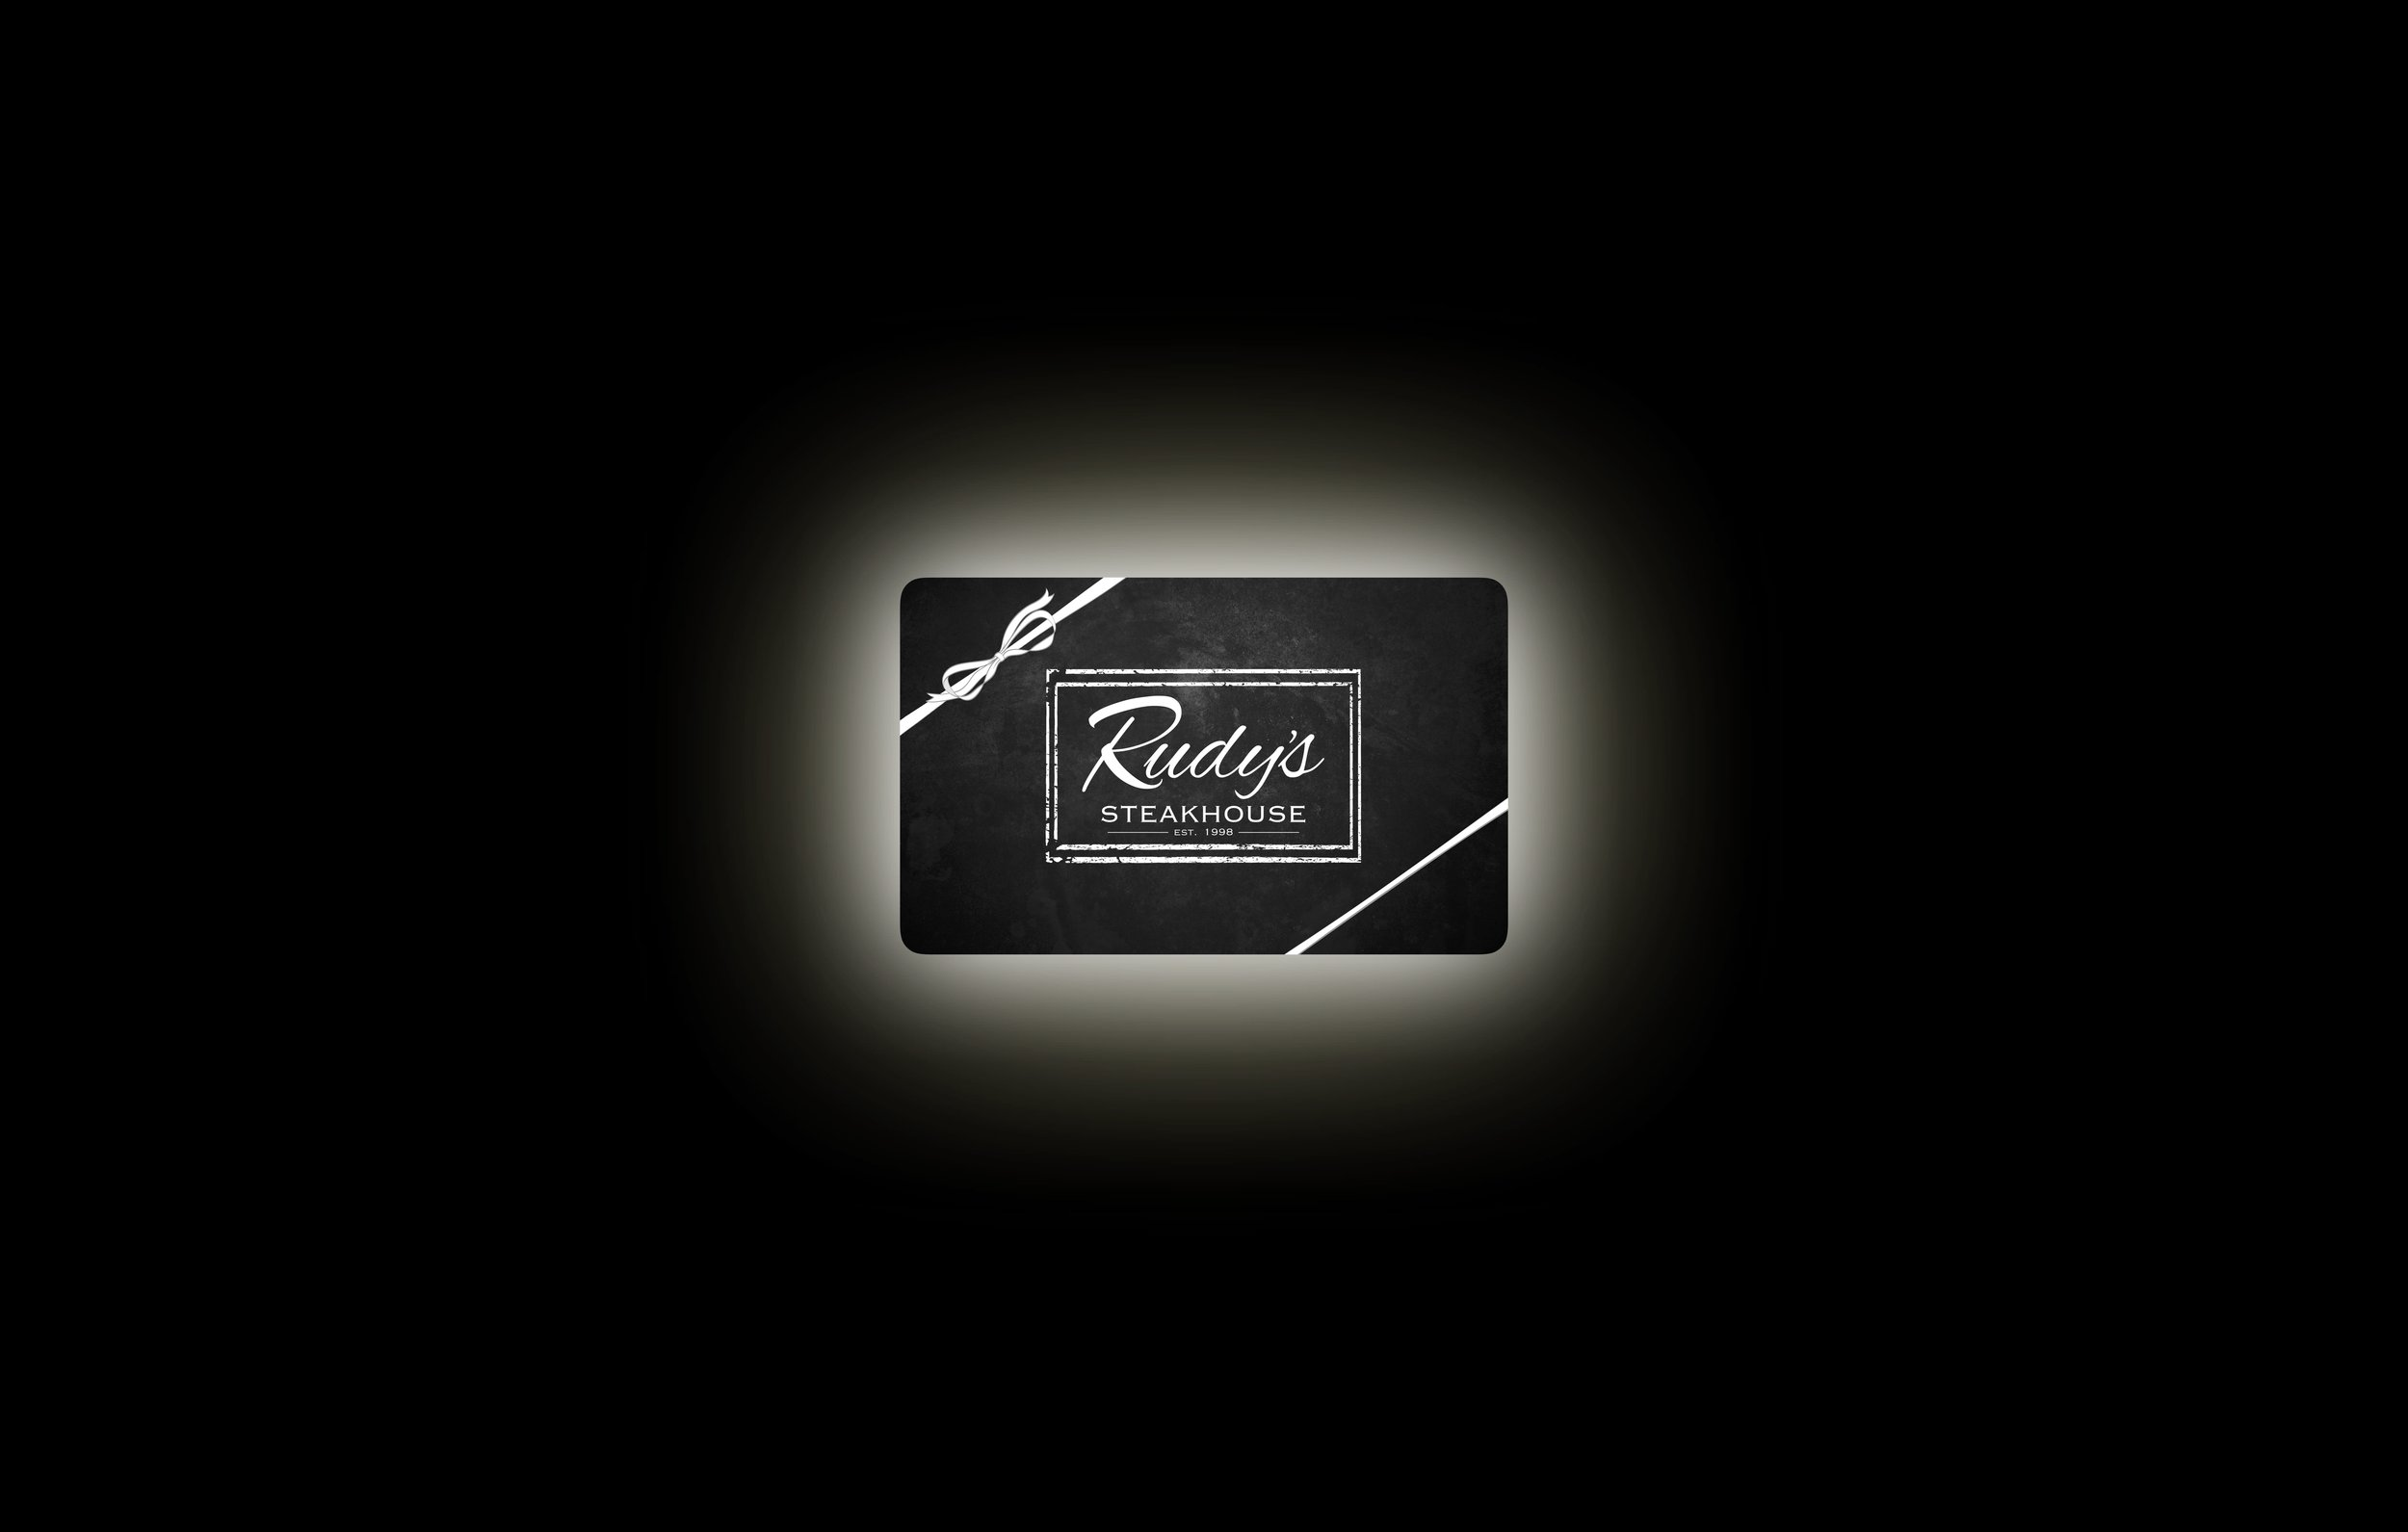 Rudy's Steakhouse Website Gift Card.jpg